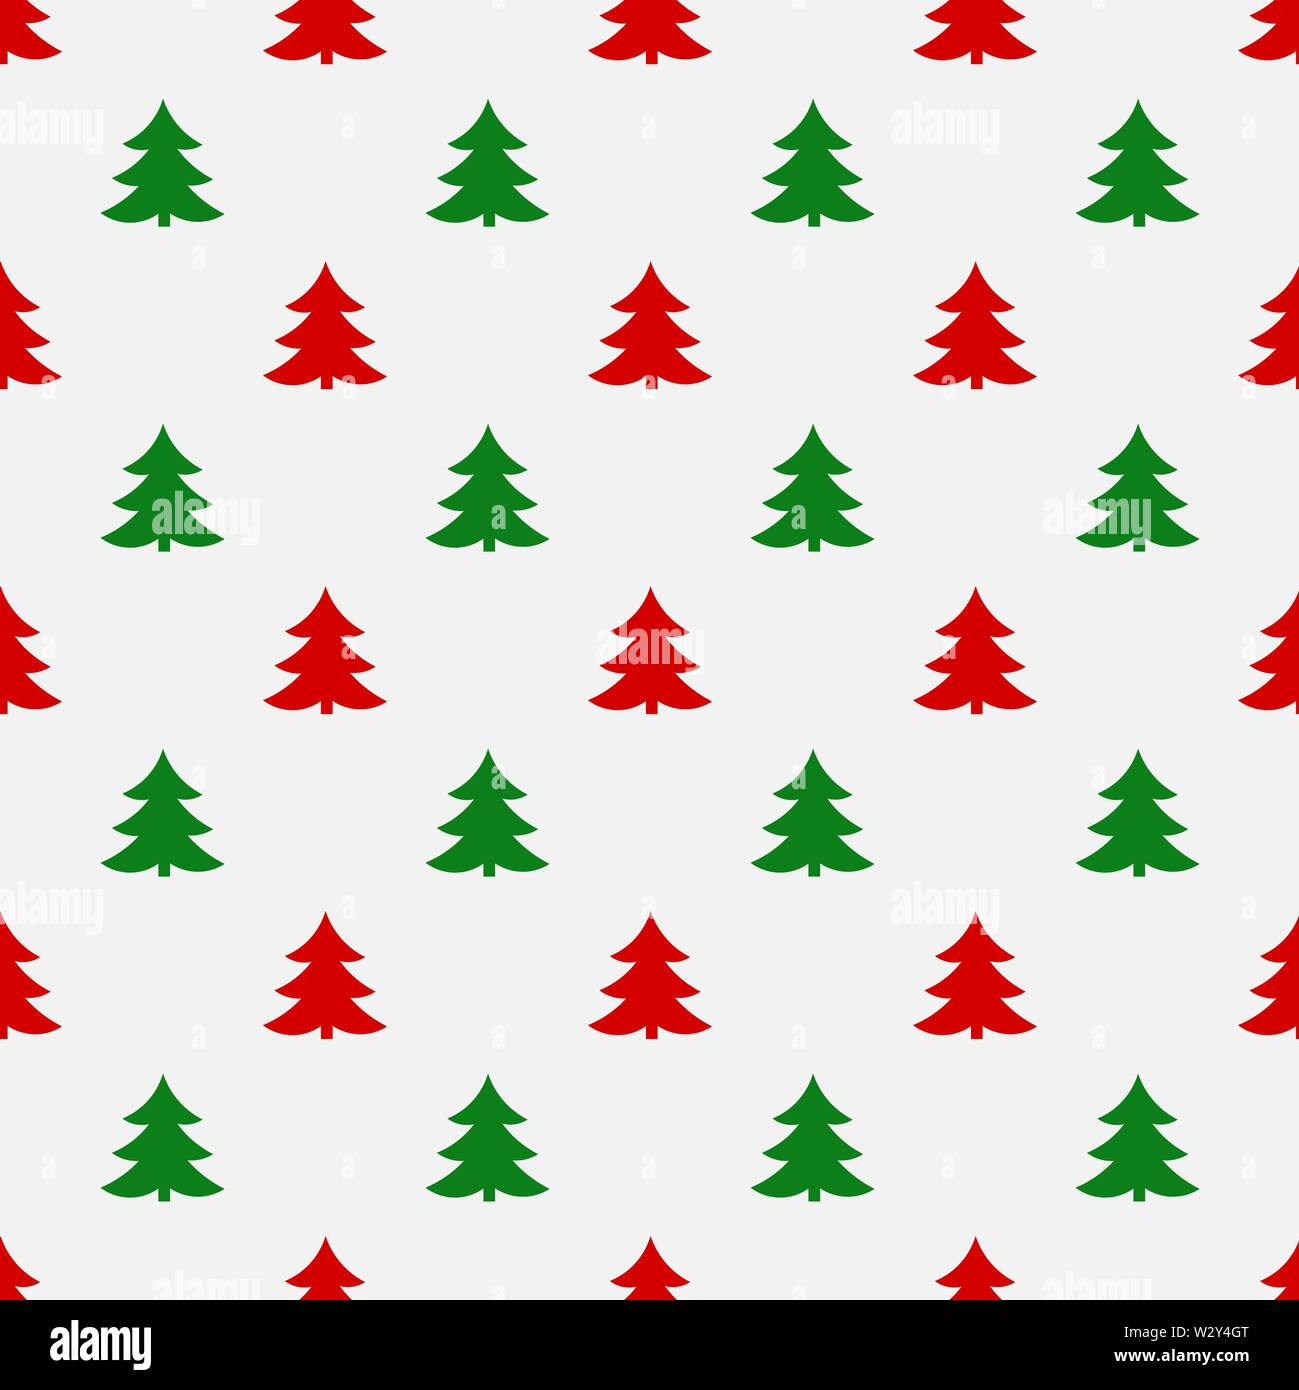 Red and green Christmas trees seamless pattern. Vector illustration - Stock Image